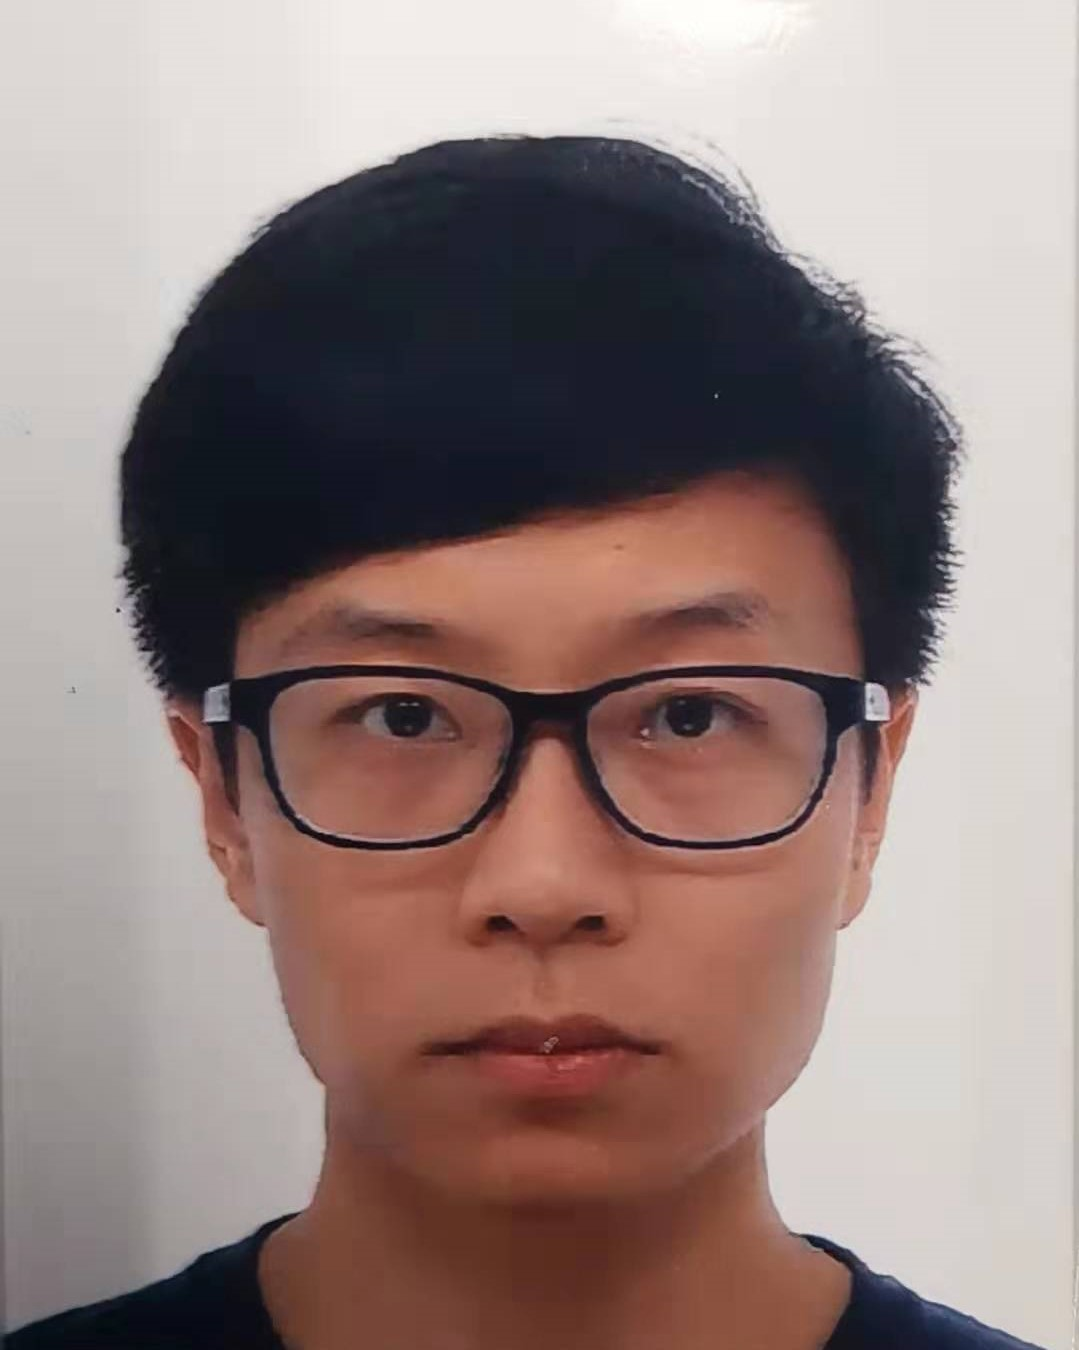 image of Dr. ZHANG Enze